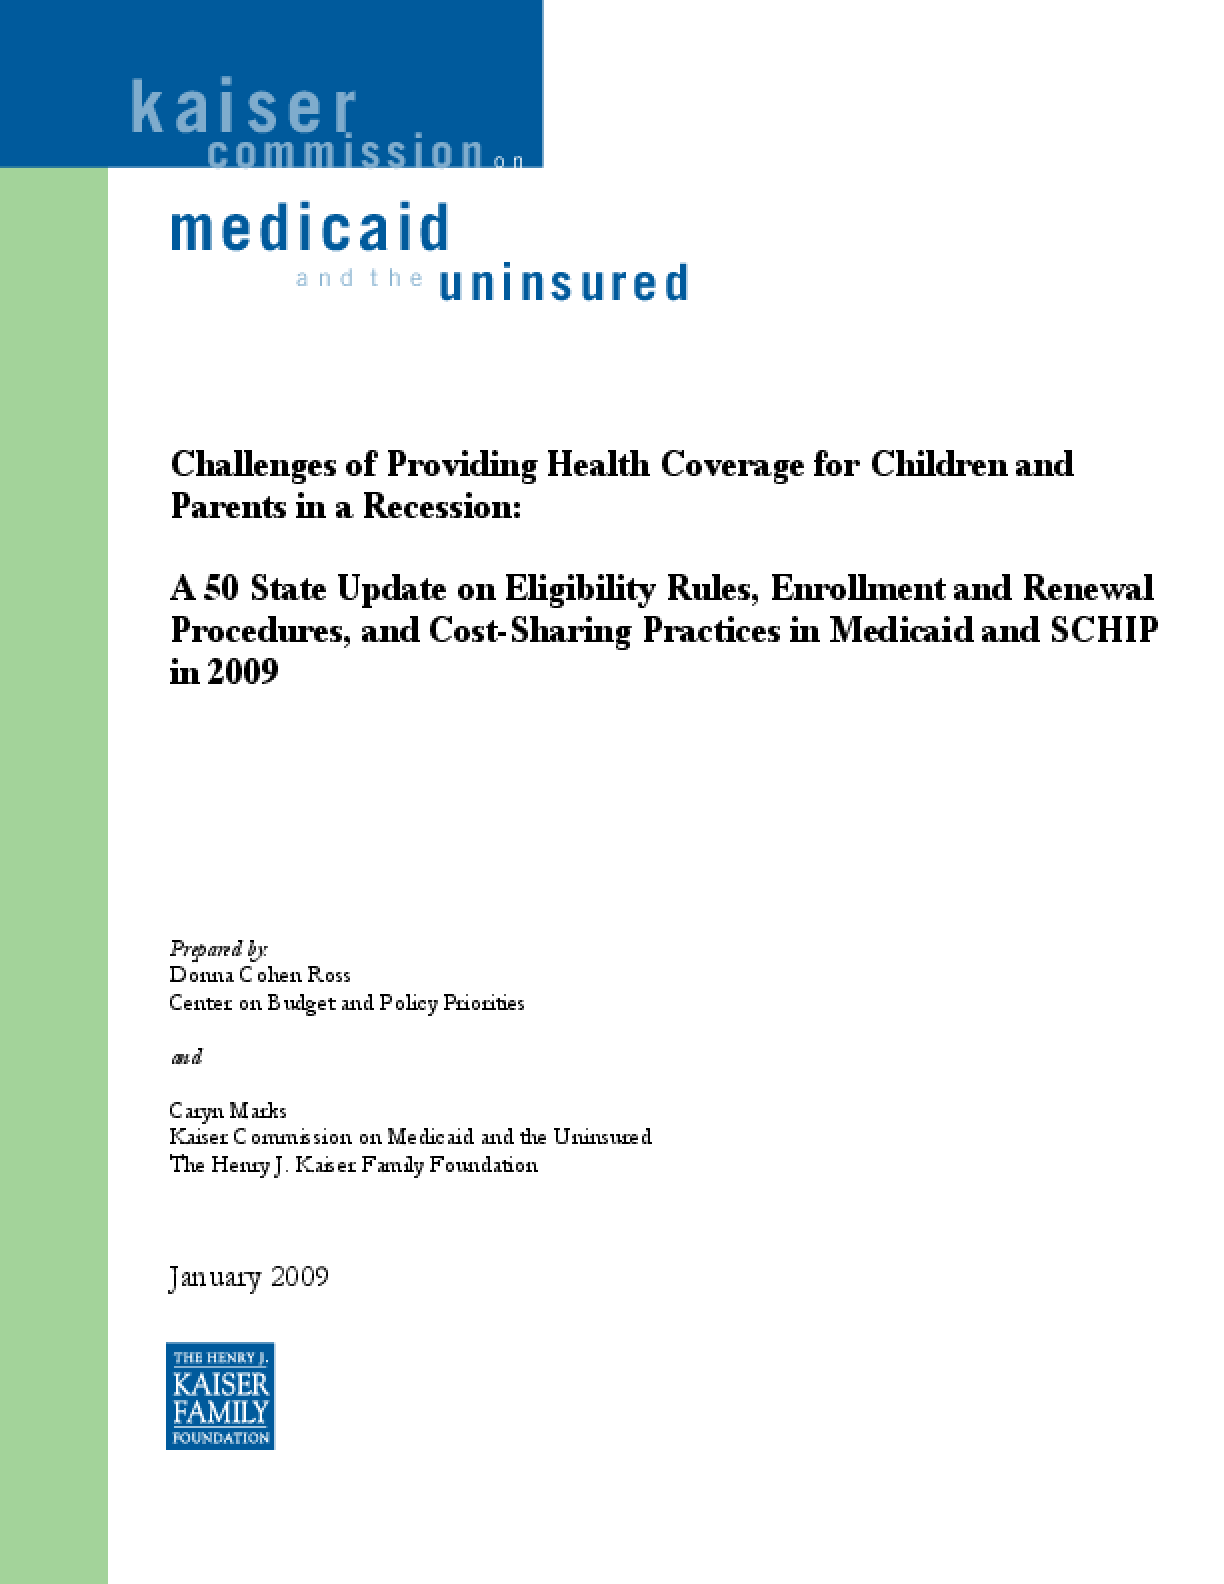 Challenges of Providing Health Coverage for Children and Parents in a Recession